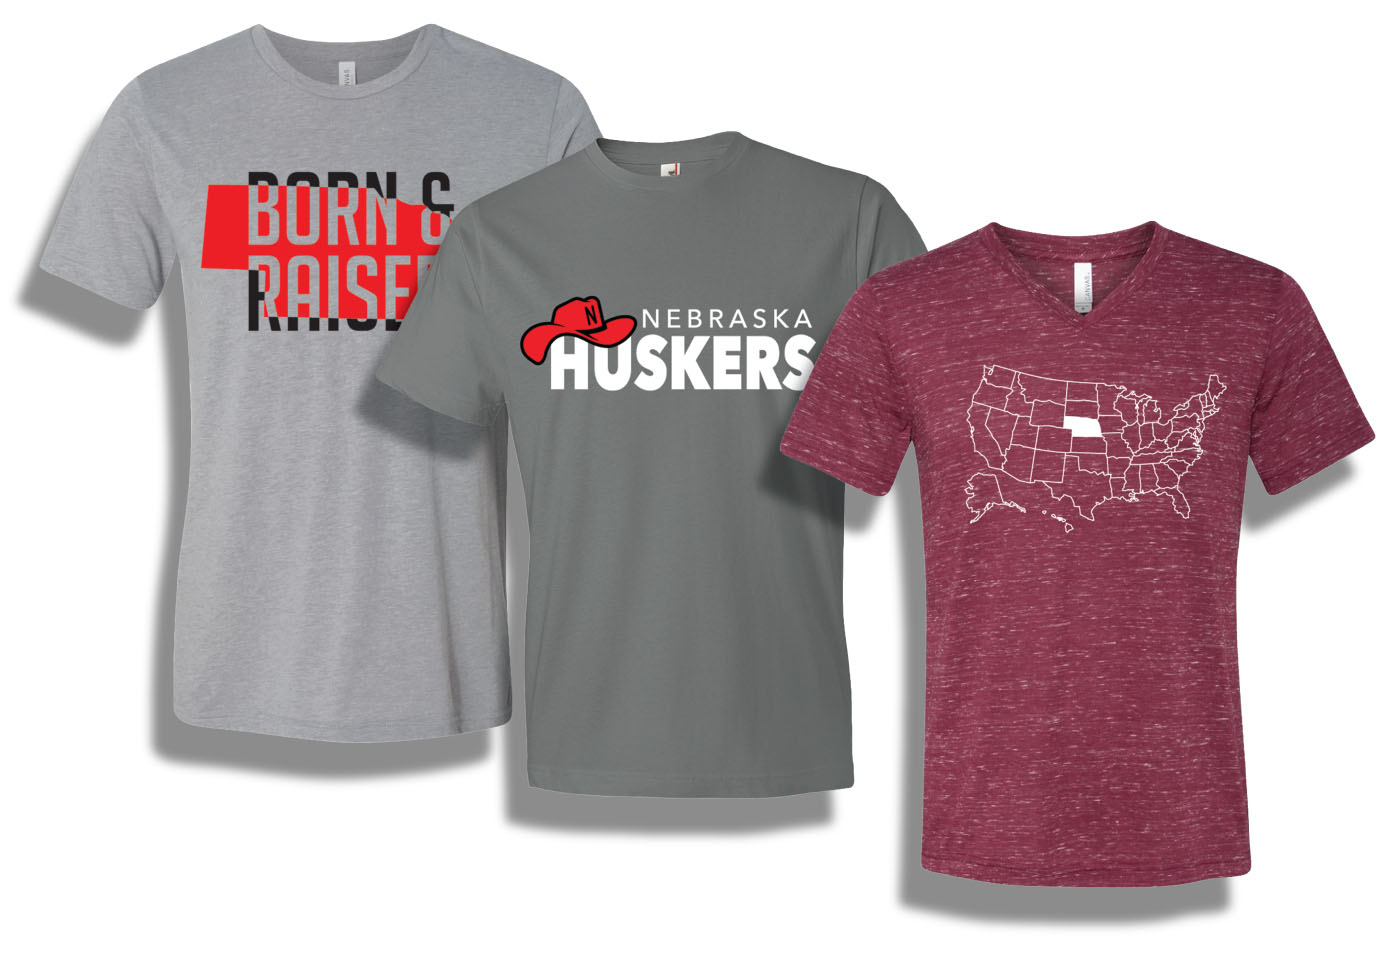 ffcc4330 Nebraska S.O.T.M. Club is your place to get unique Nebraska themed graphic  t-shirts! Show off your Cornhusker pride and love for everything Nebraska.